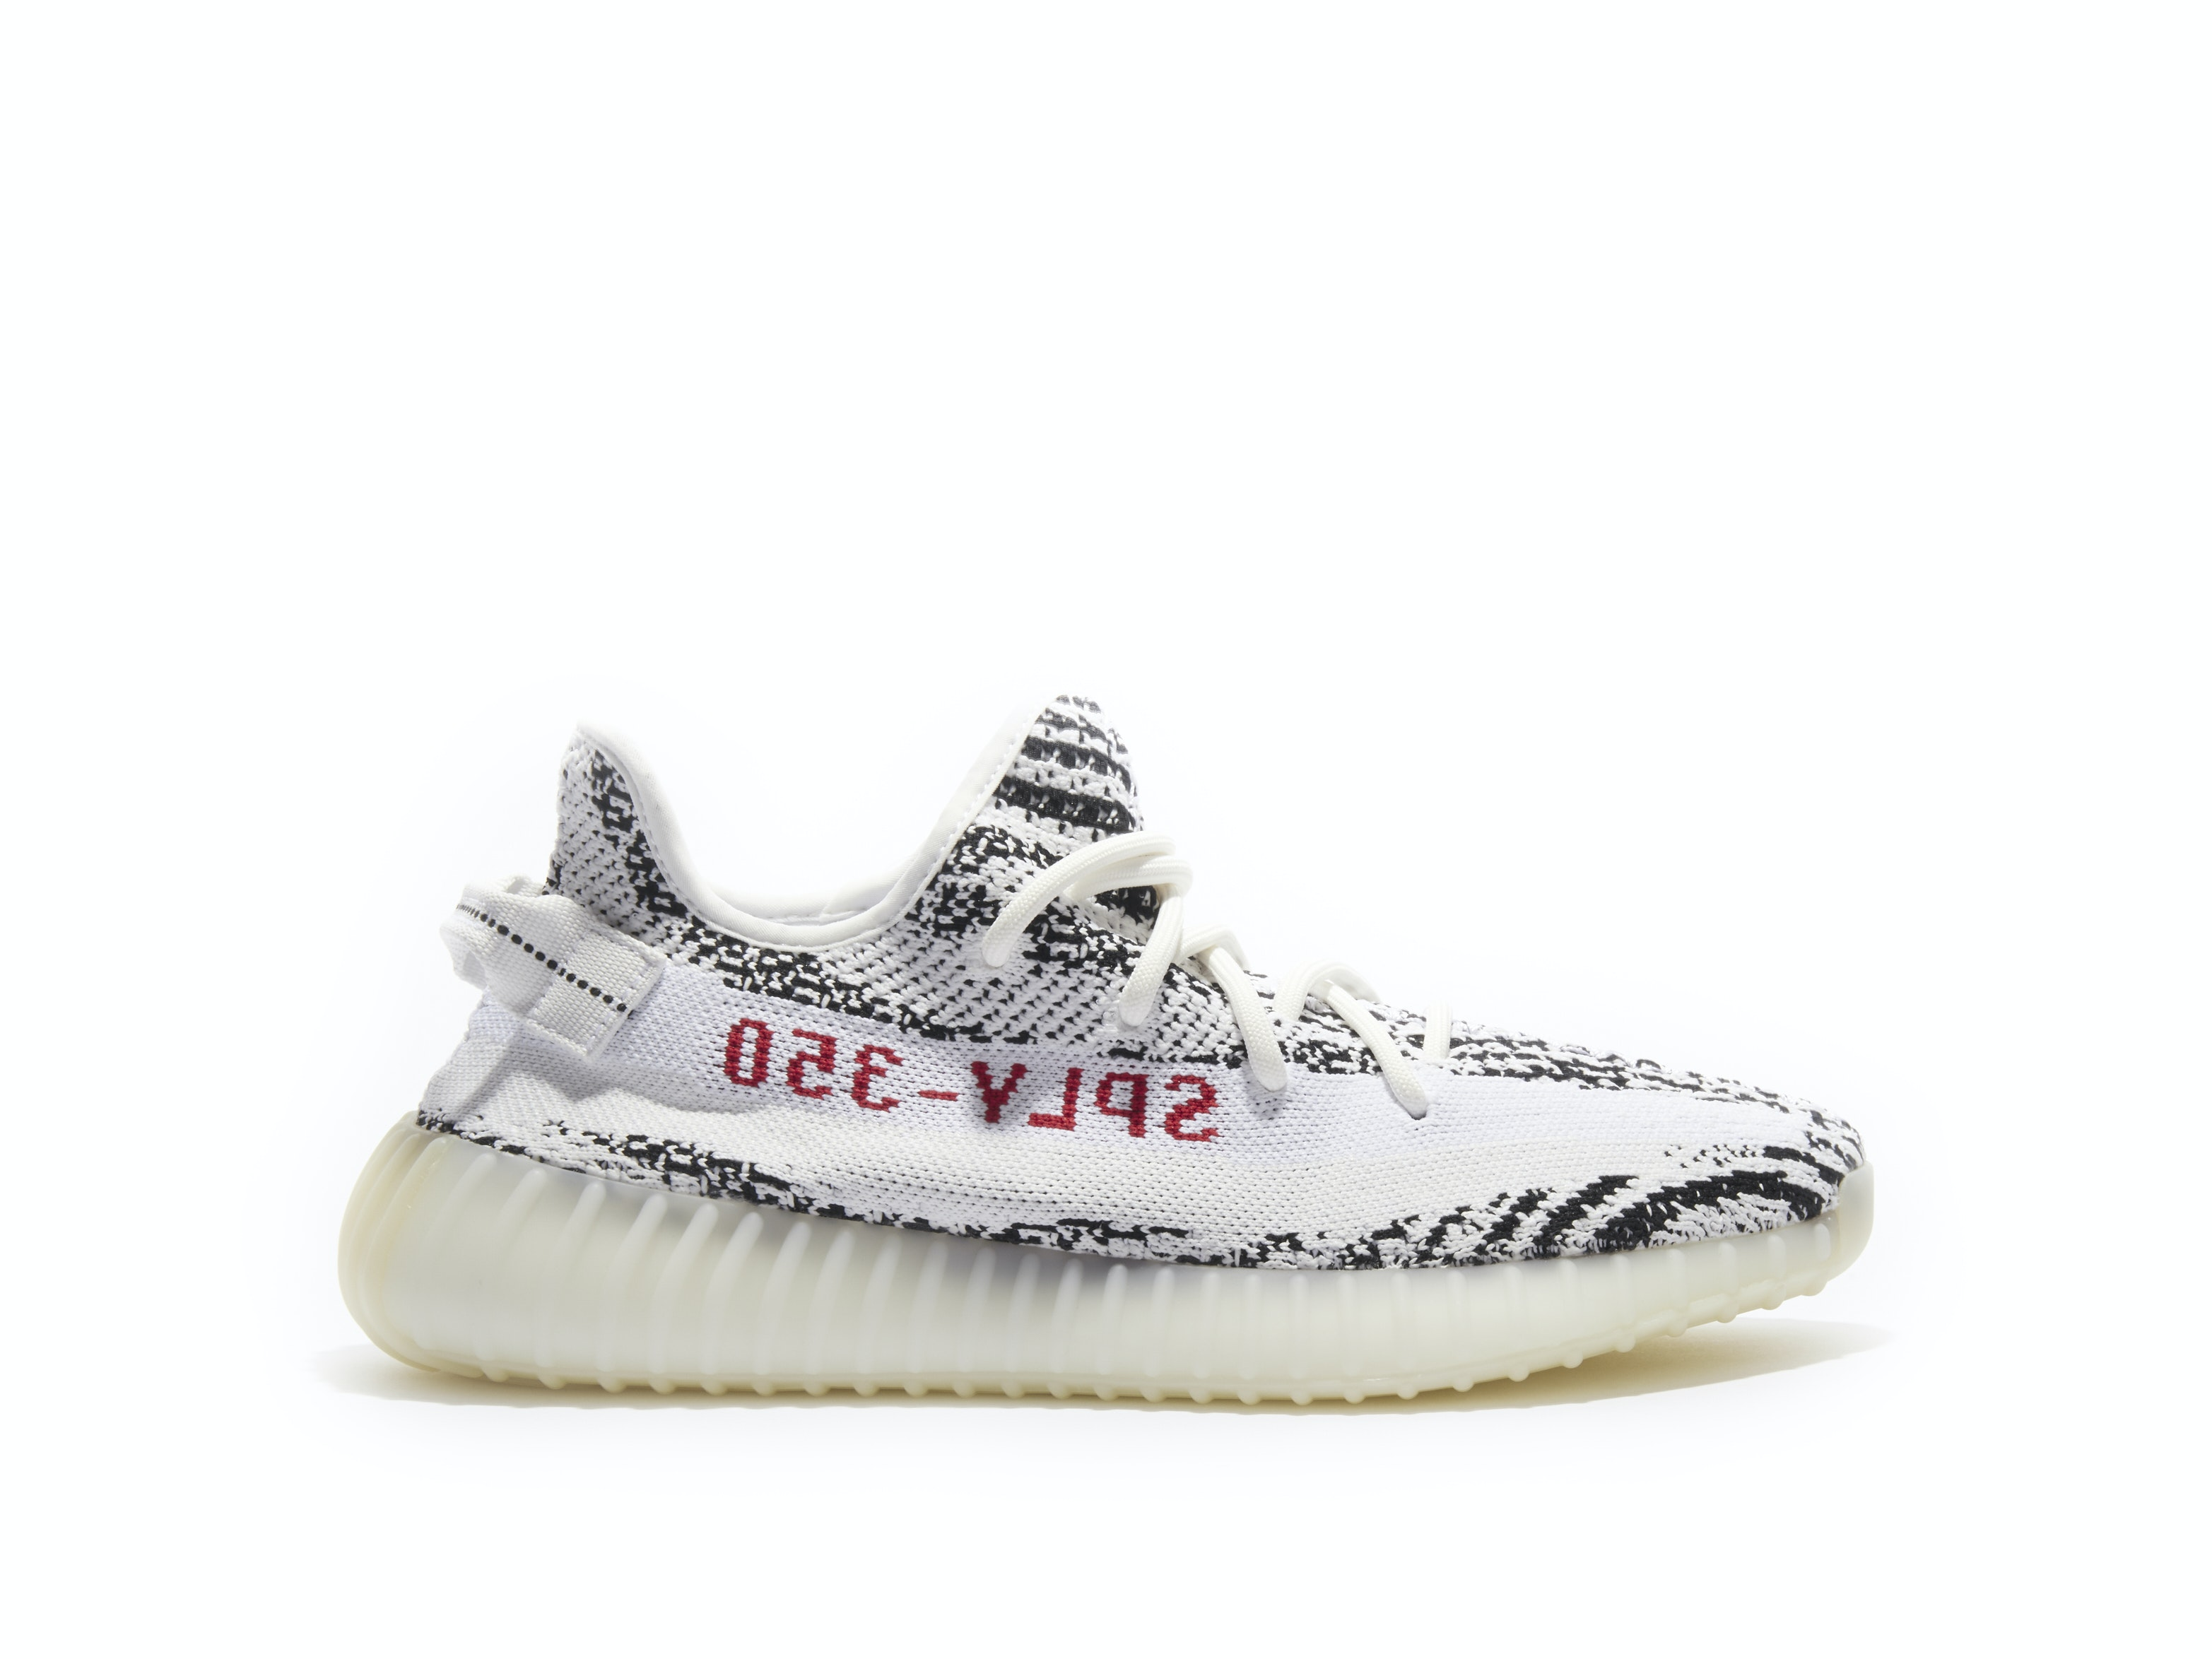 65beeba70fde7 Yeezy Boost 350 V2 Zebra. 100% AuthenticAvg Delivery Time  1-2 days. Adidas    CP9654